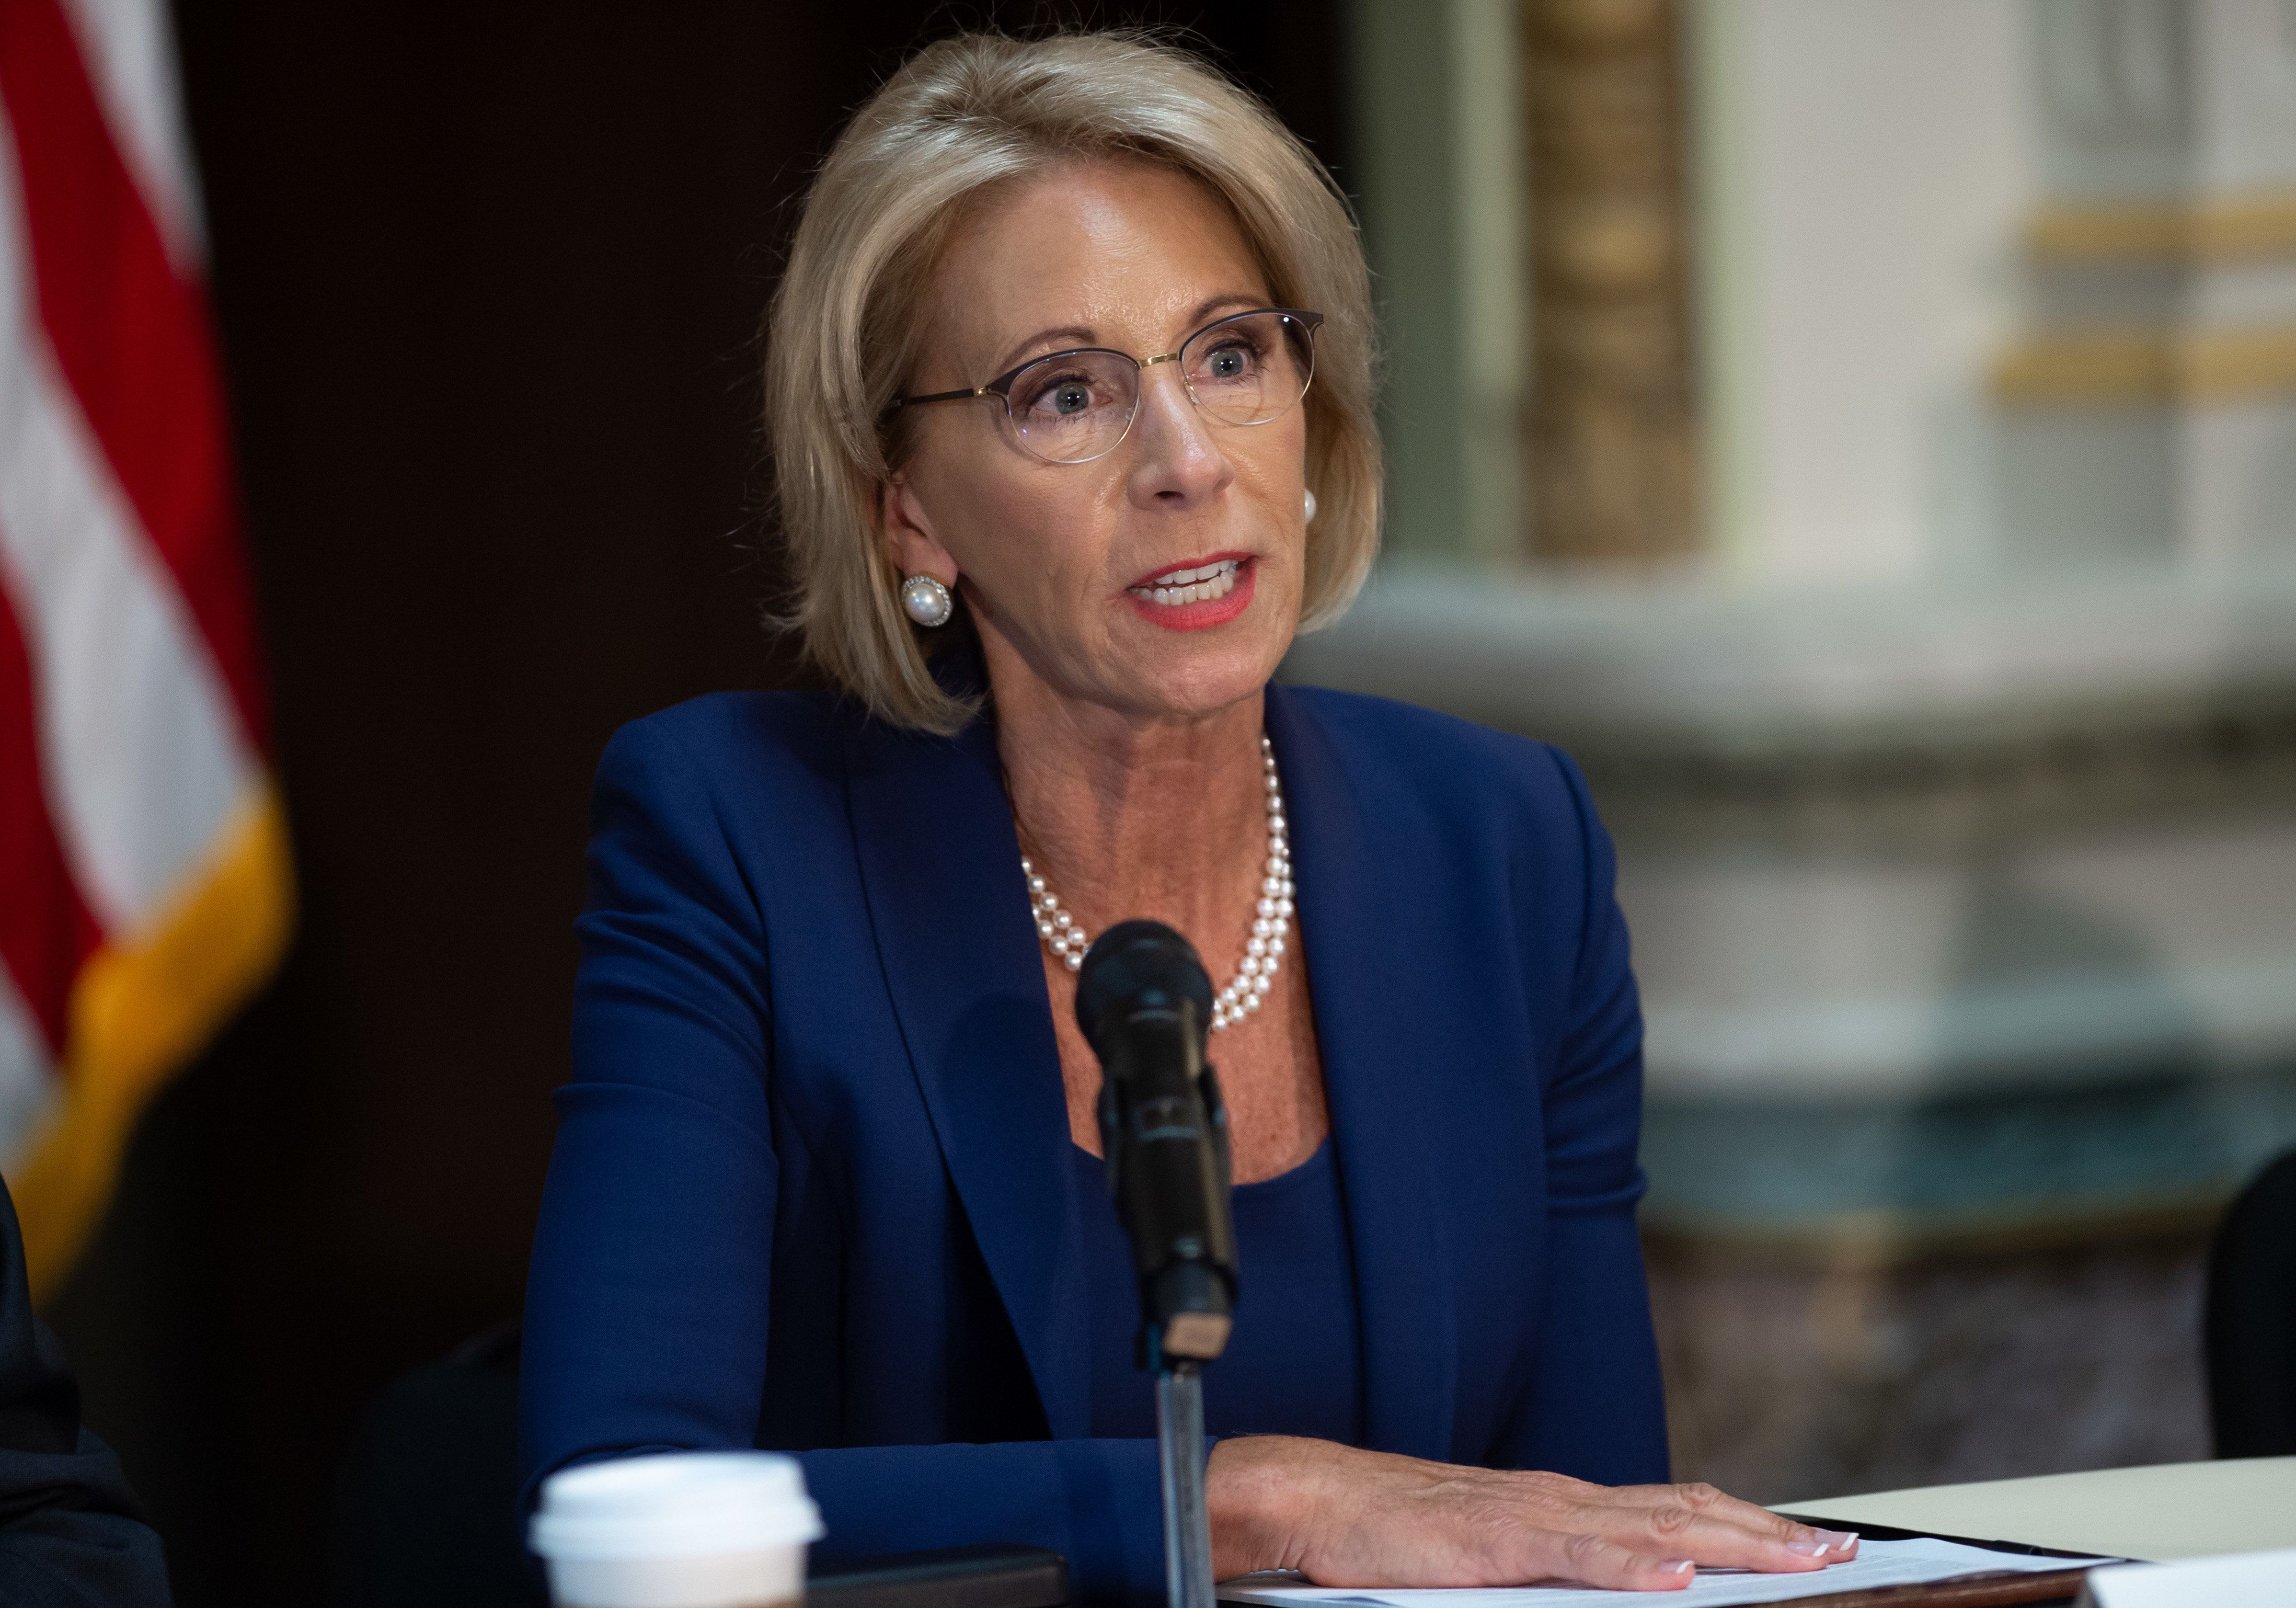 Secretary of Education Betsy DeVos speaks during the Federal Commission on School Safety on Aug. 16 in Washington, D.C.